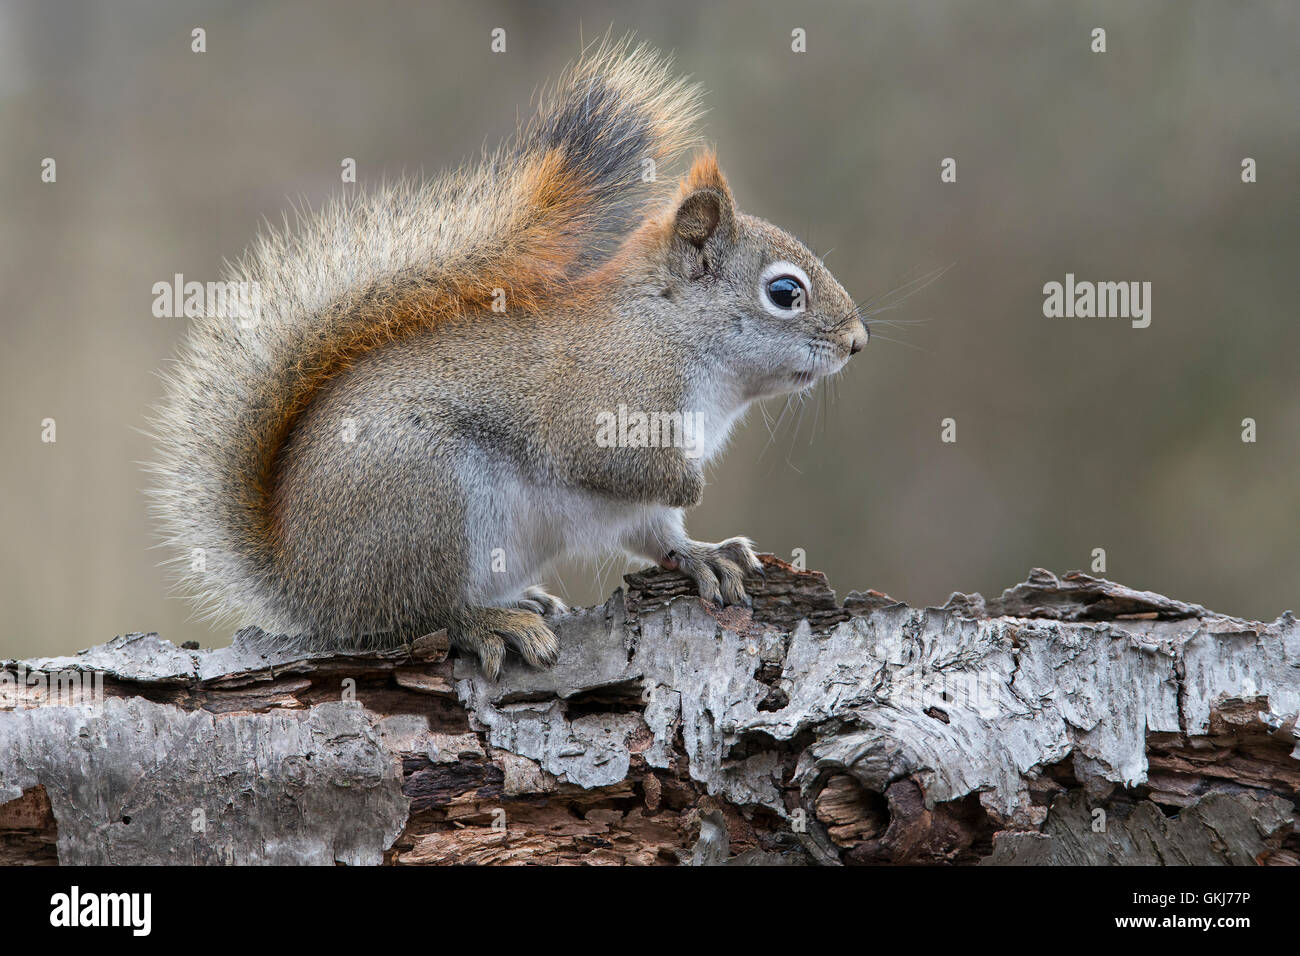 Eastern Red Squirrel searching for food (Tamiasciurus or Sciurus hudsonicus), sitting on White Birch tree, Winter, - Stock Image